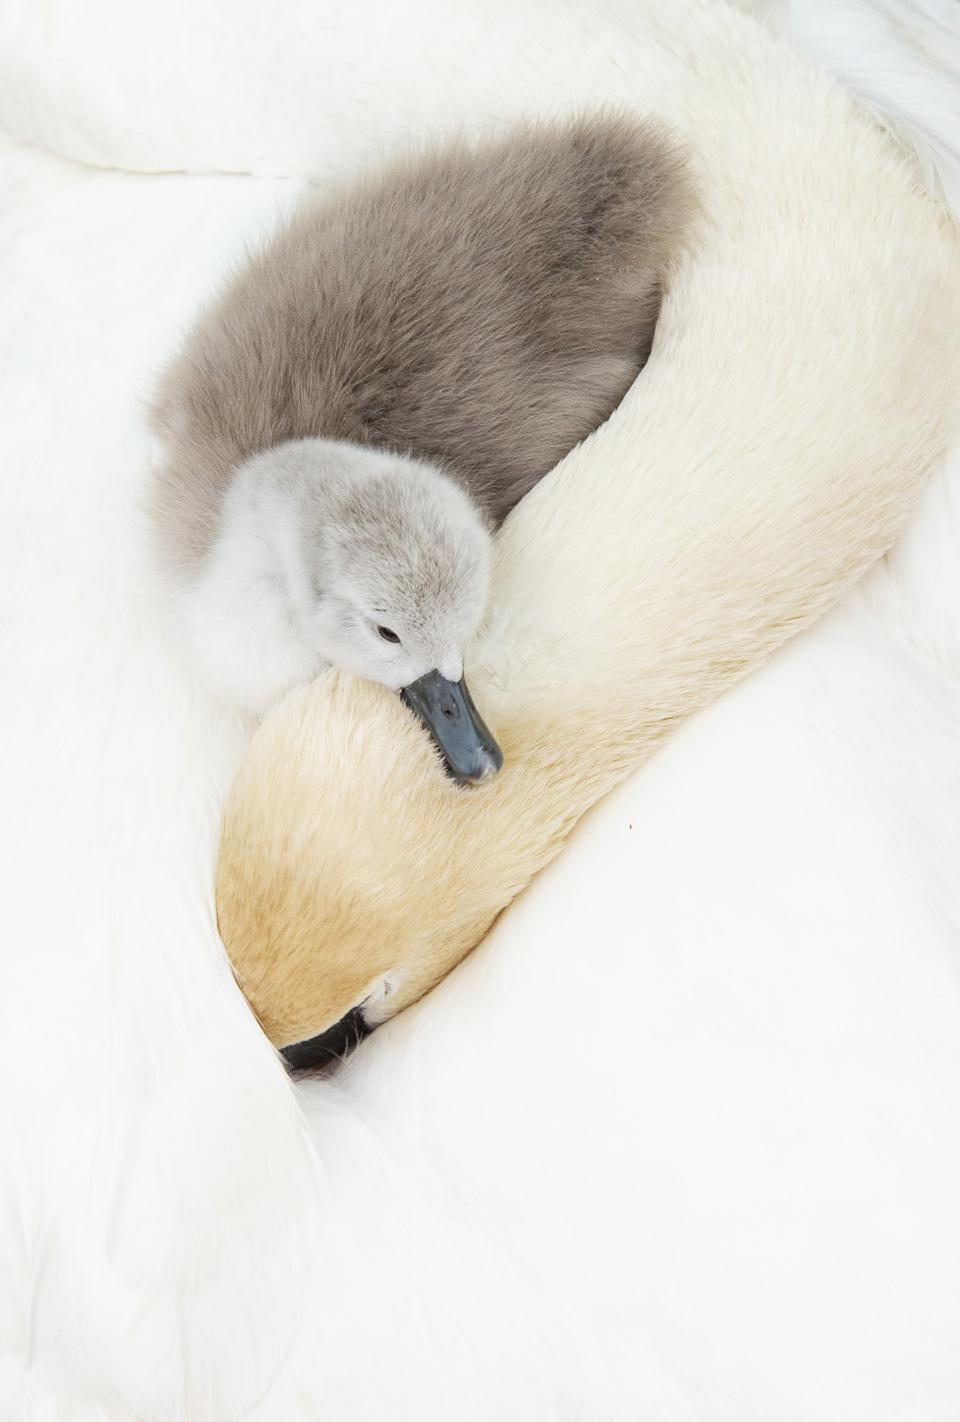 An infant Mute swan rests its head on its sleeping mother.